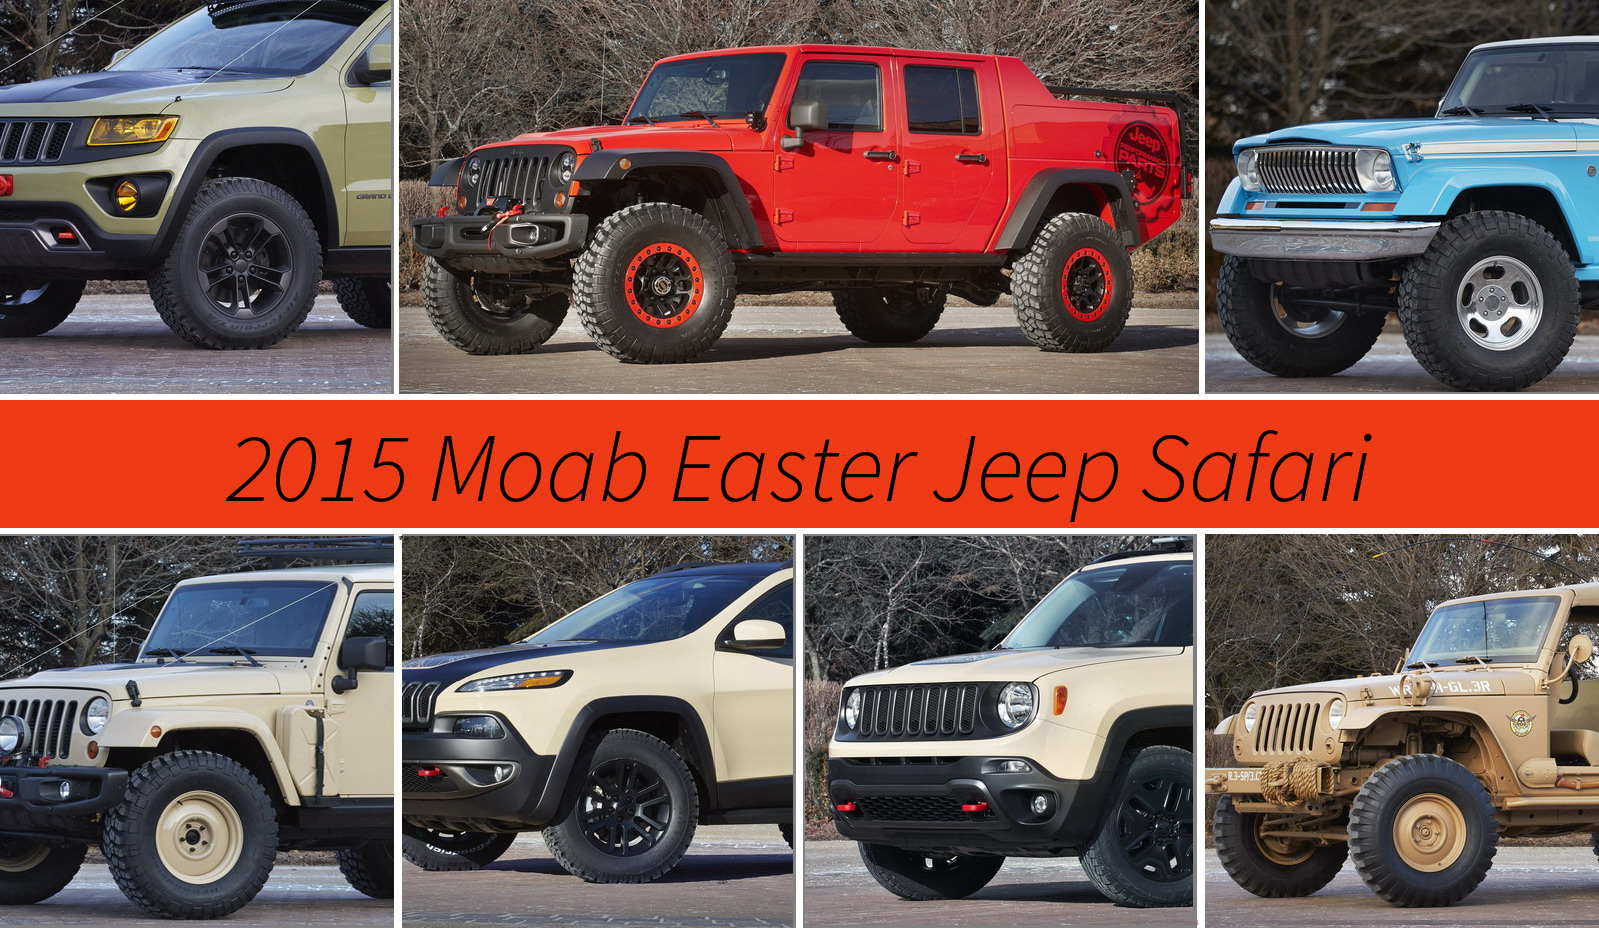 Jeep Reveals Seven Concepts For 2015 Moab Easter Jeep Safari | Top Speed. »